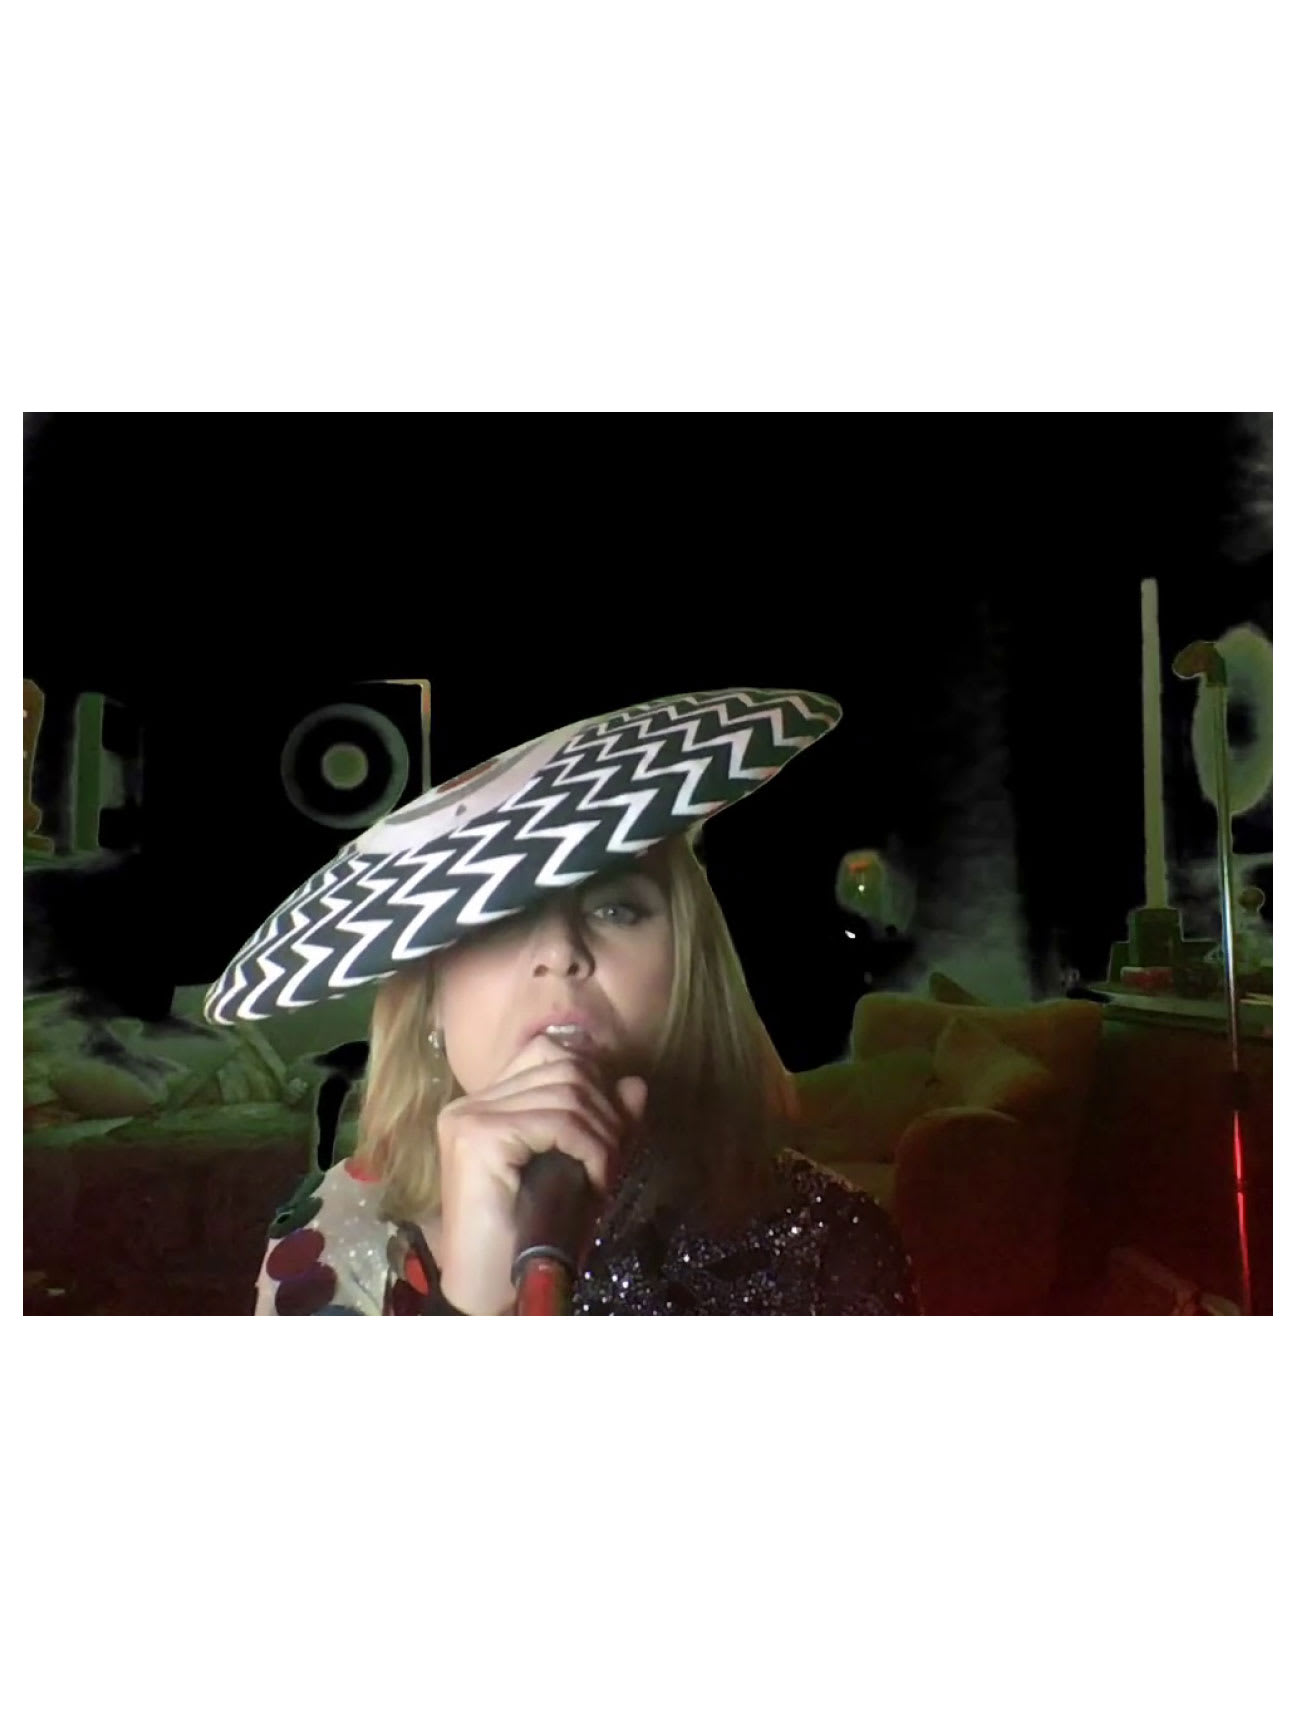 A woman singing in a dark room holding a microphone and wearing a zigzag patterned hat.